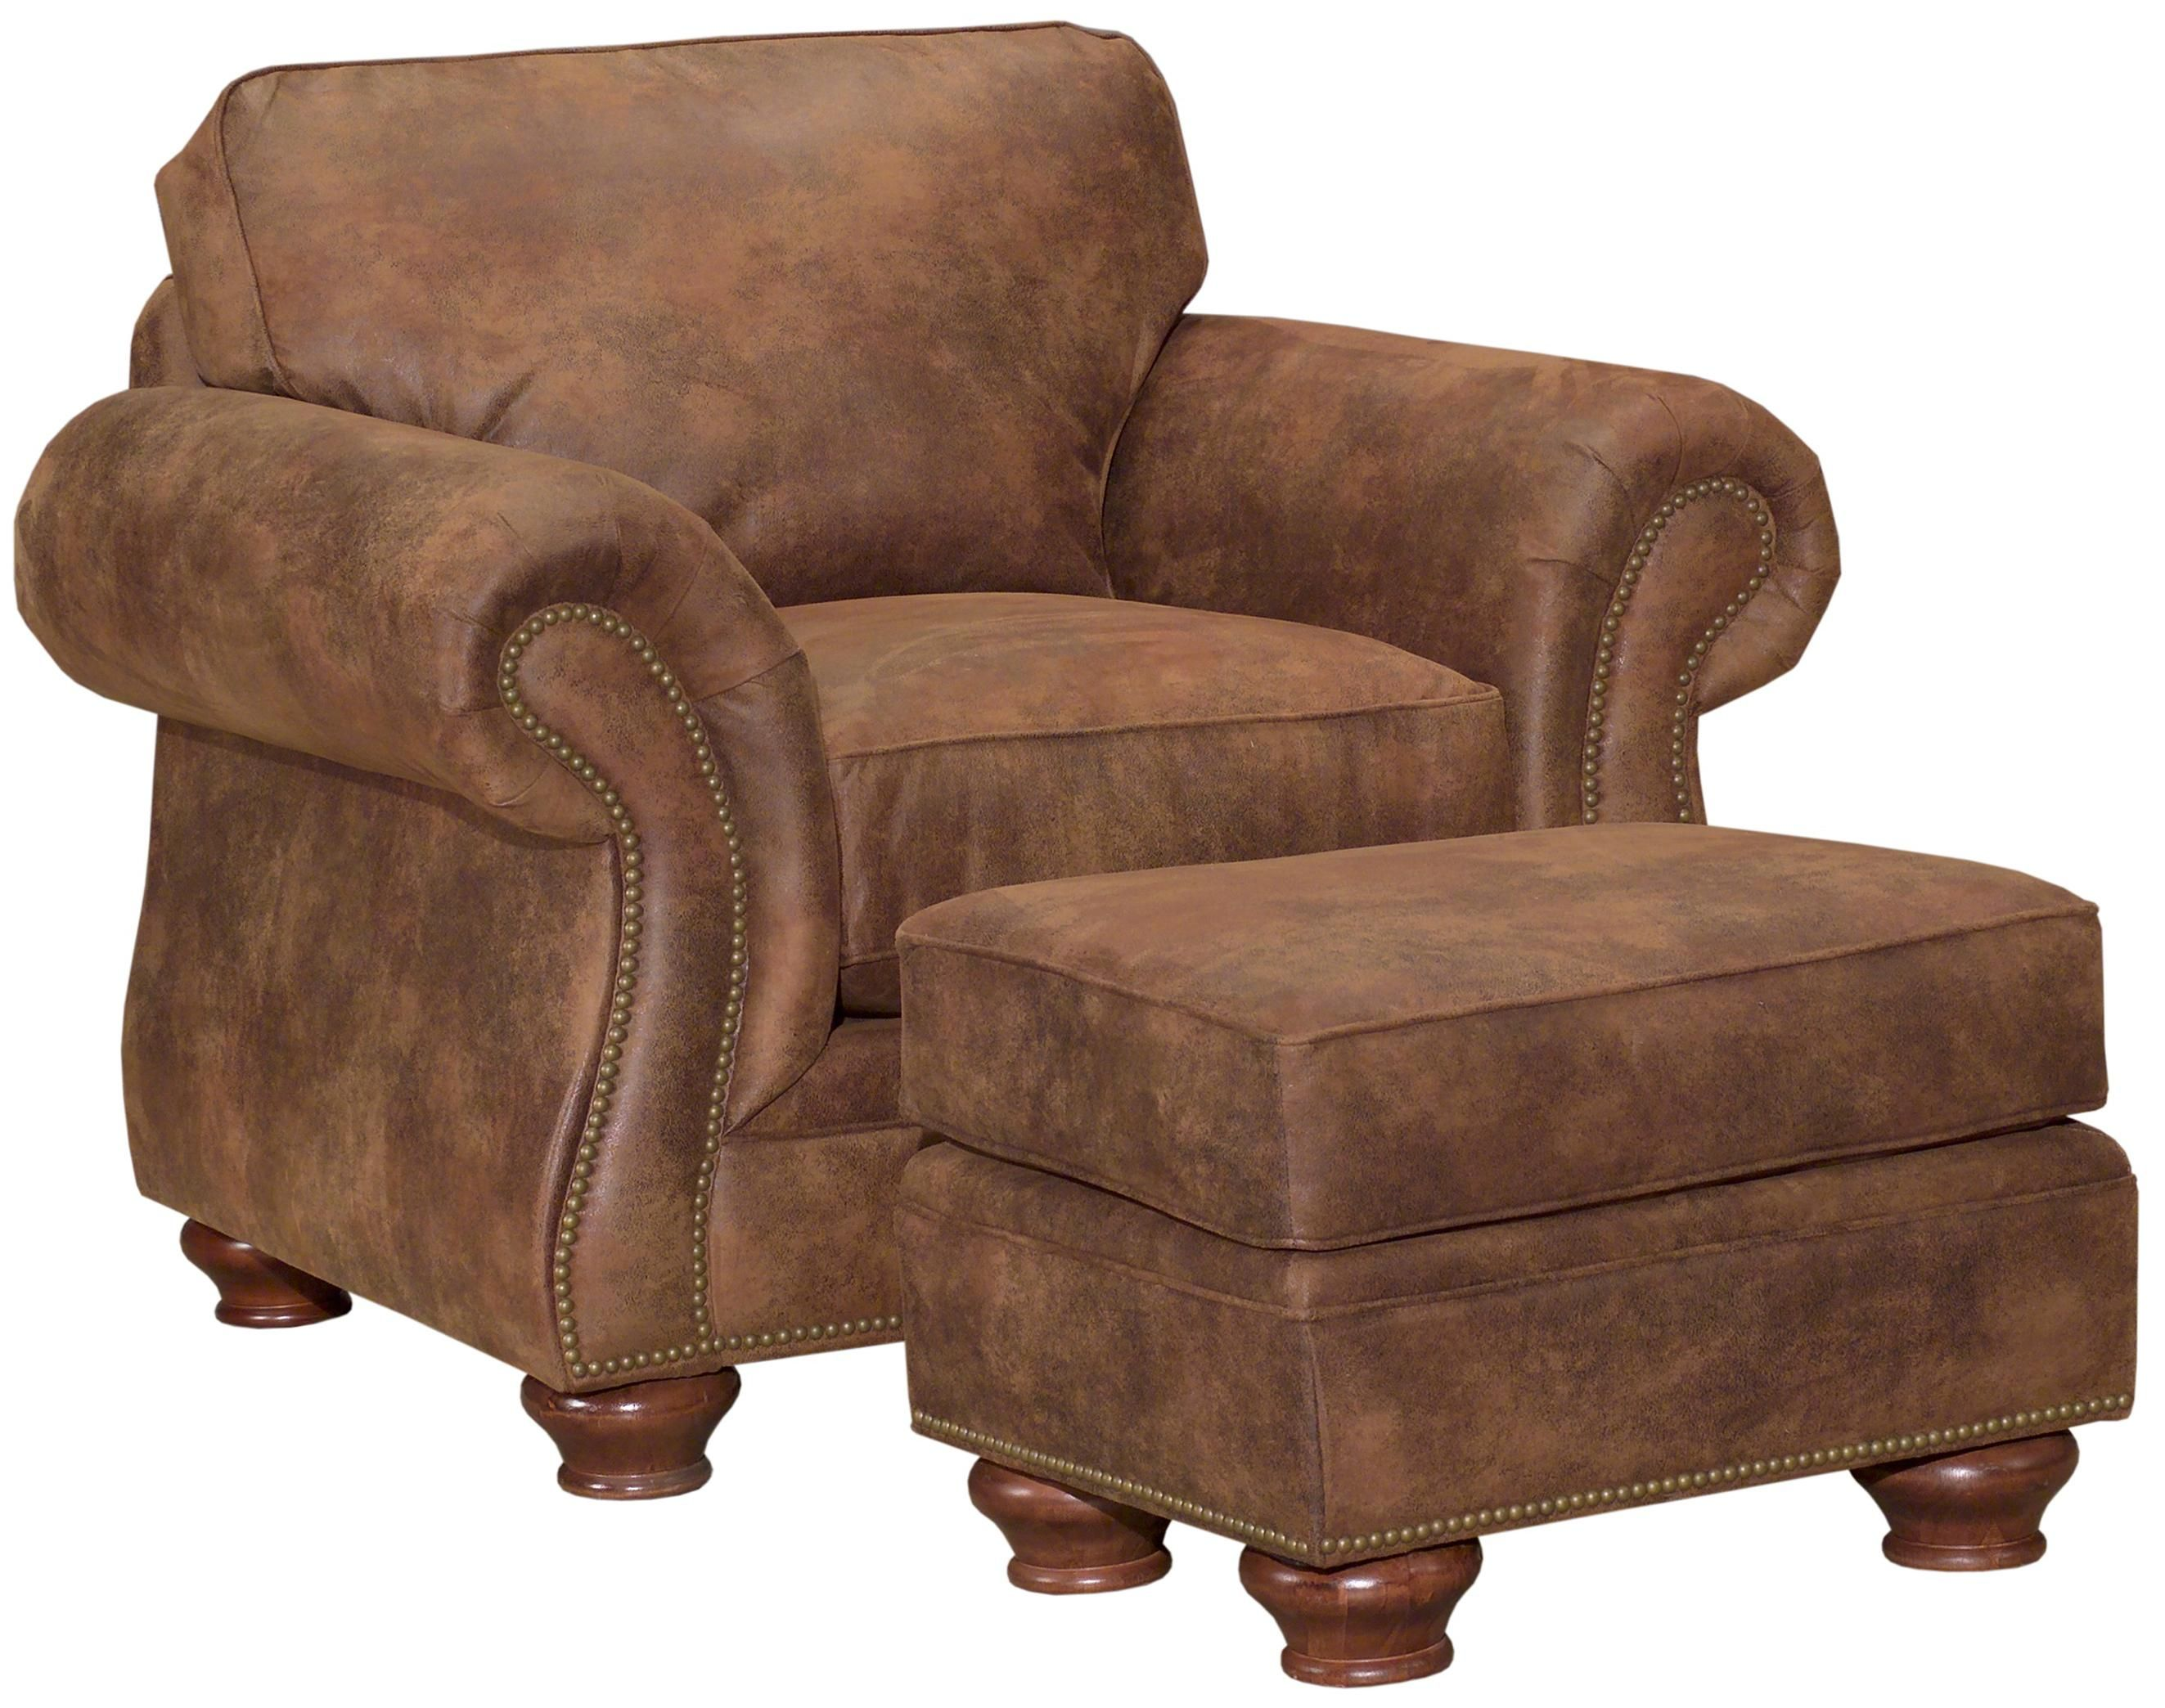 5081 laramie chair and ottoman set by broyhill furniture